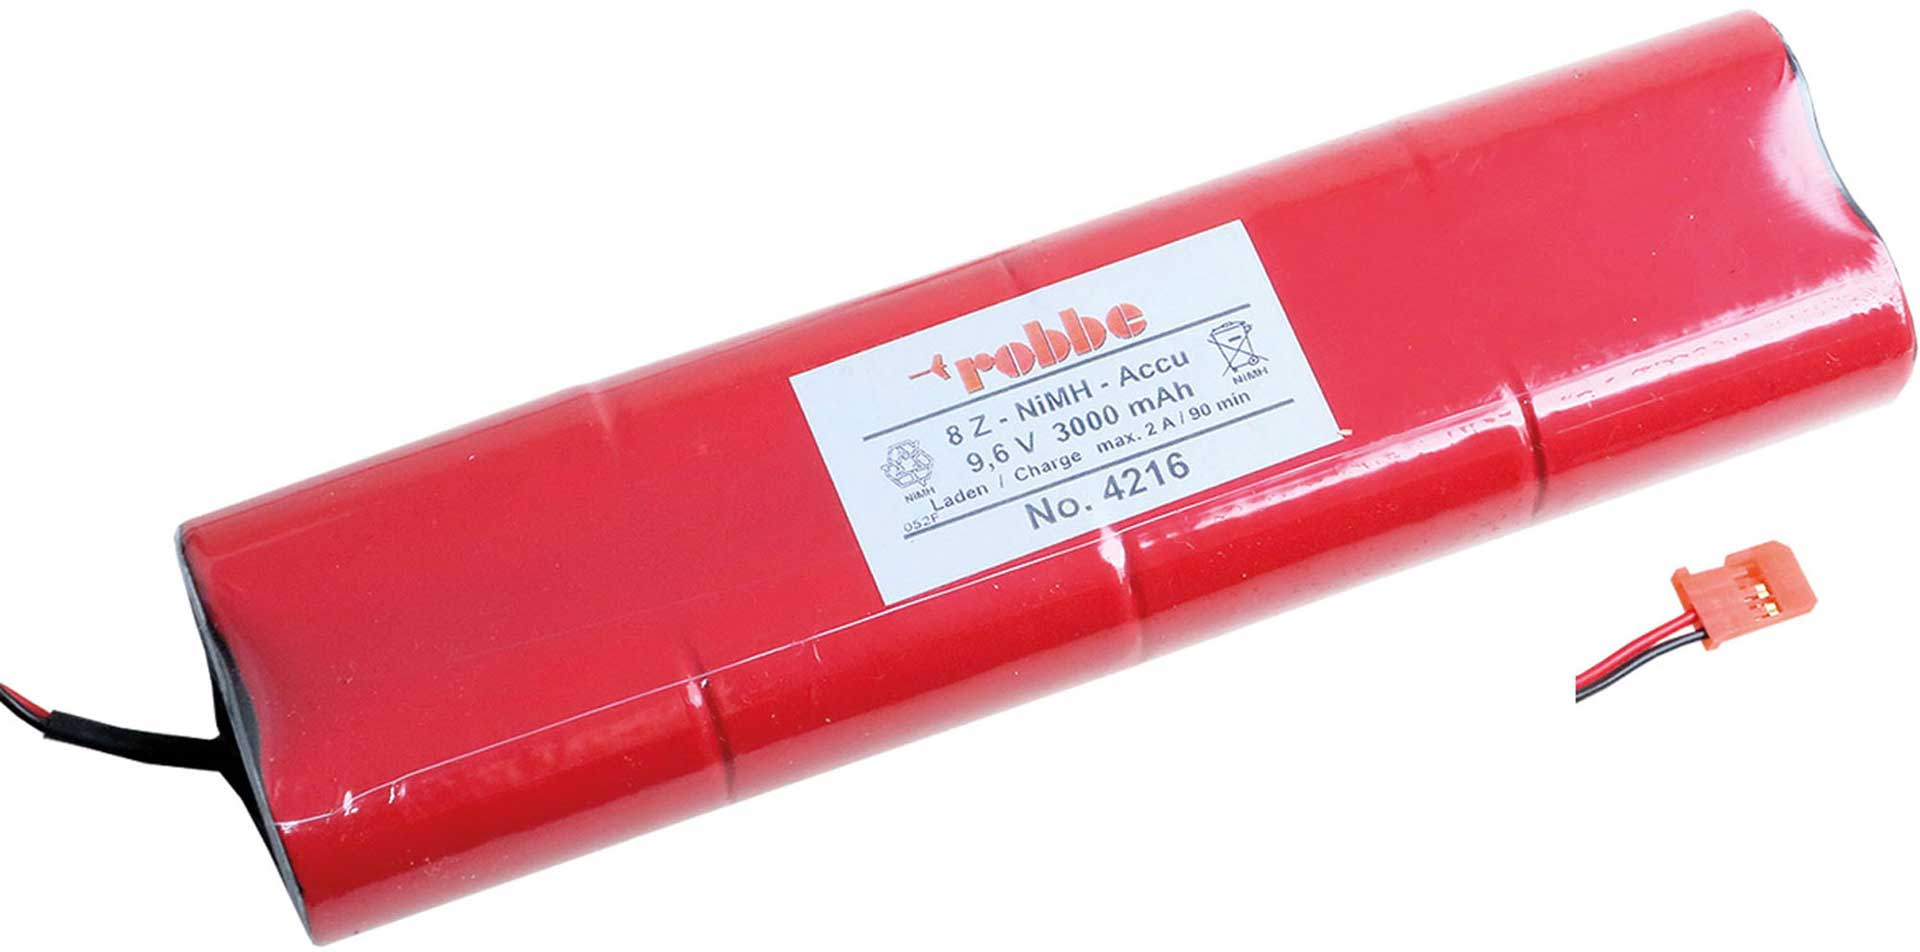 ROBBE TRANSMITTER BATTERY 9,6V 3300MAH, F14,FC